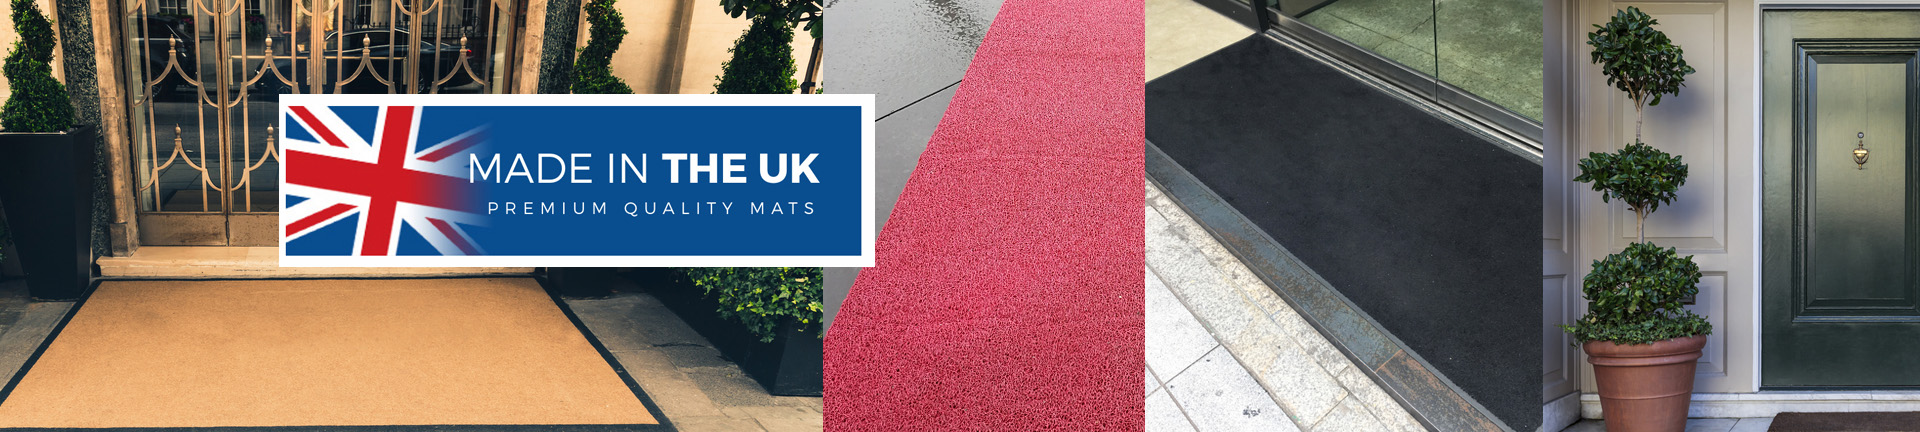 Hardwearing Outdoor Mats Free Uk Delivery On All Orders